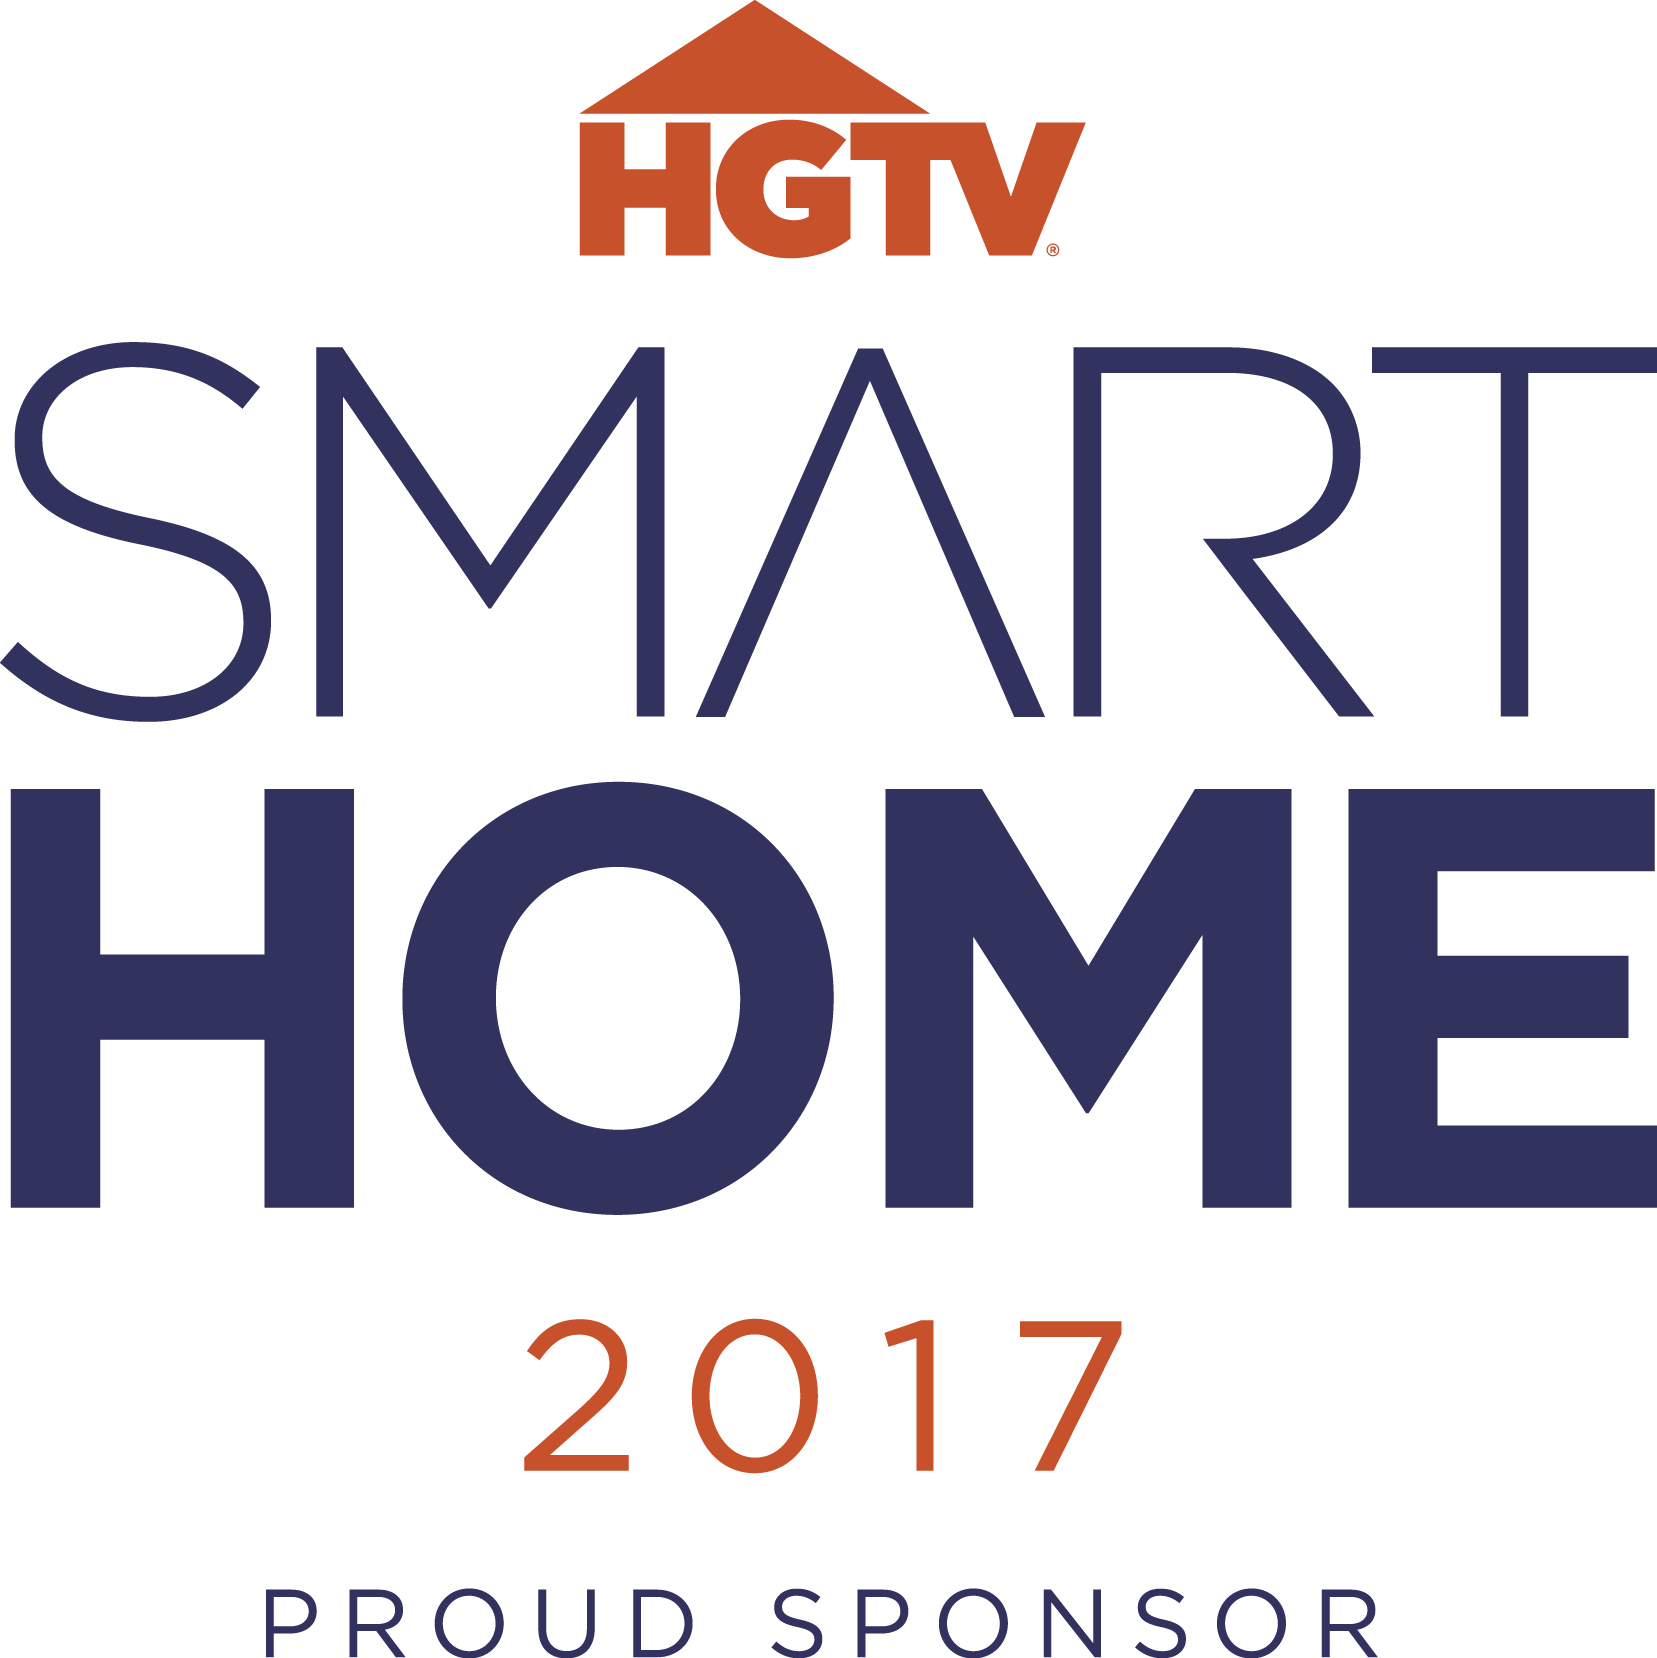 Hgtv smart home entry form